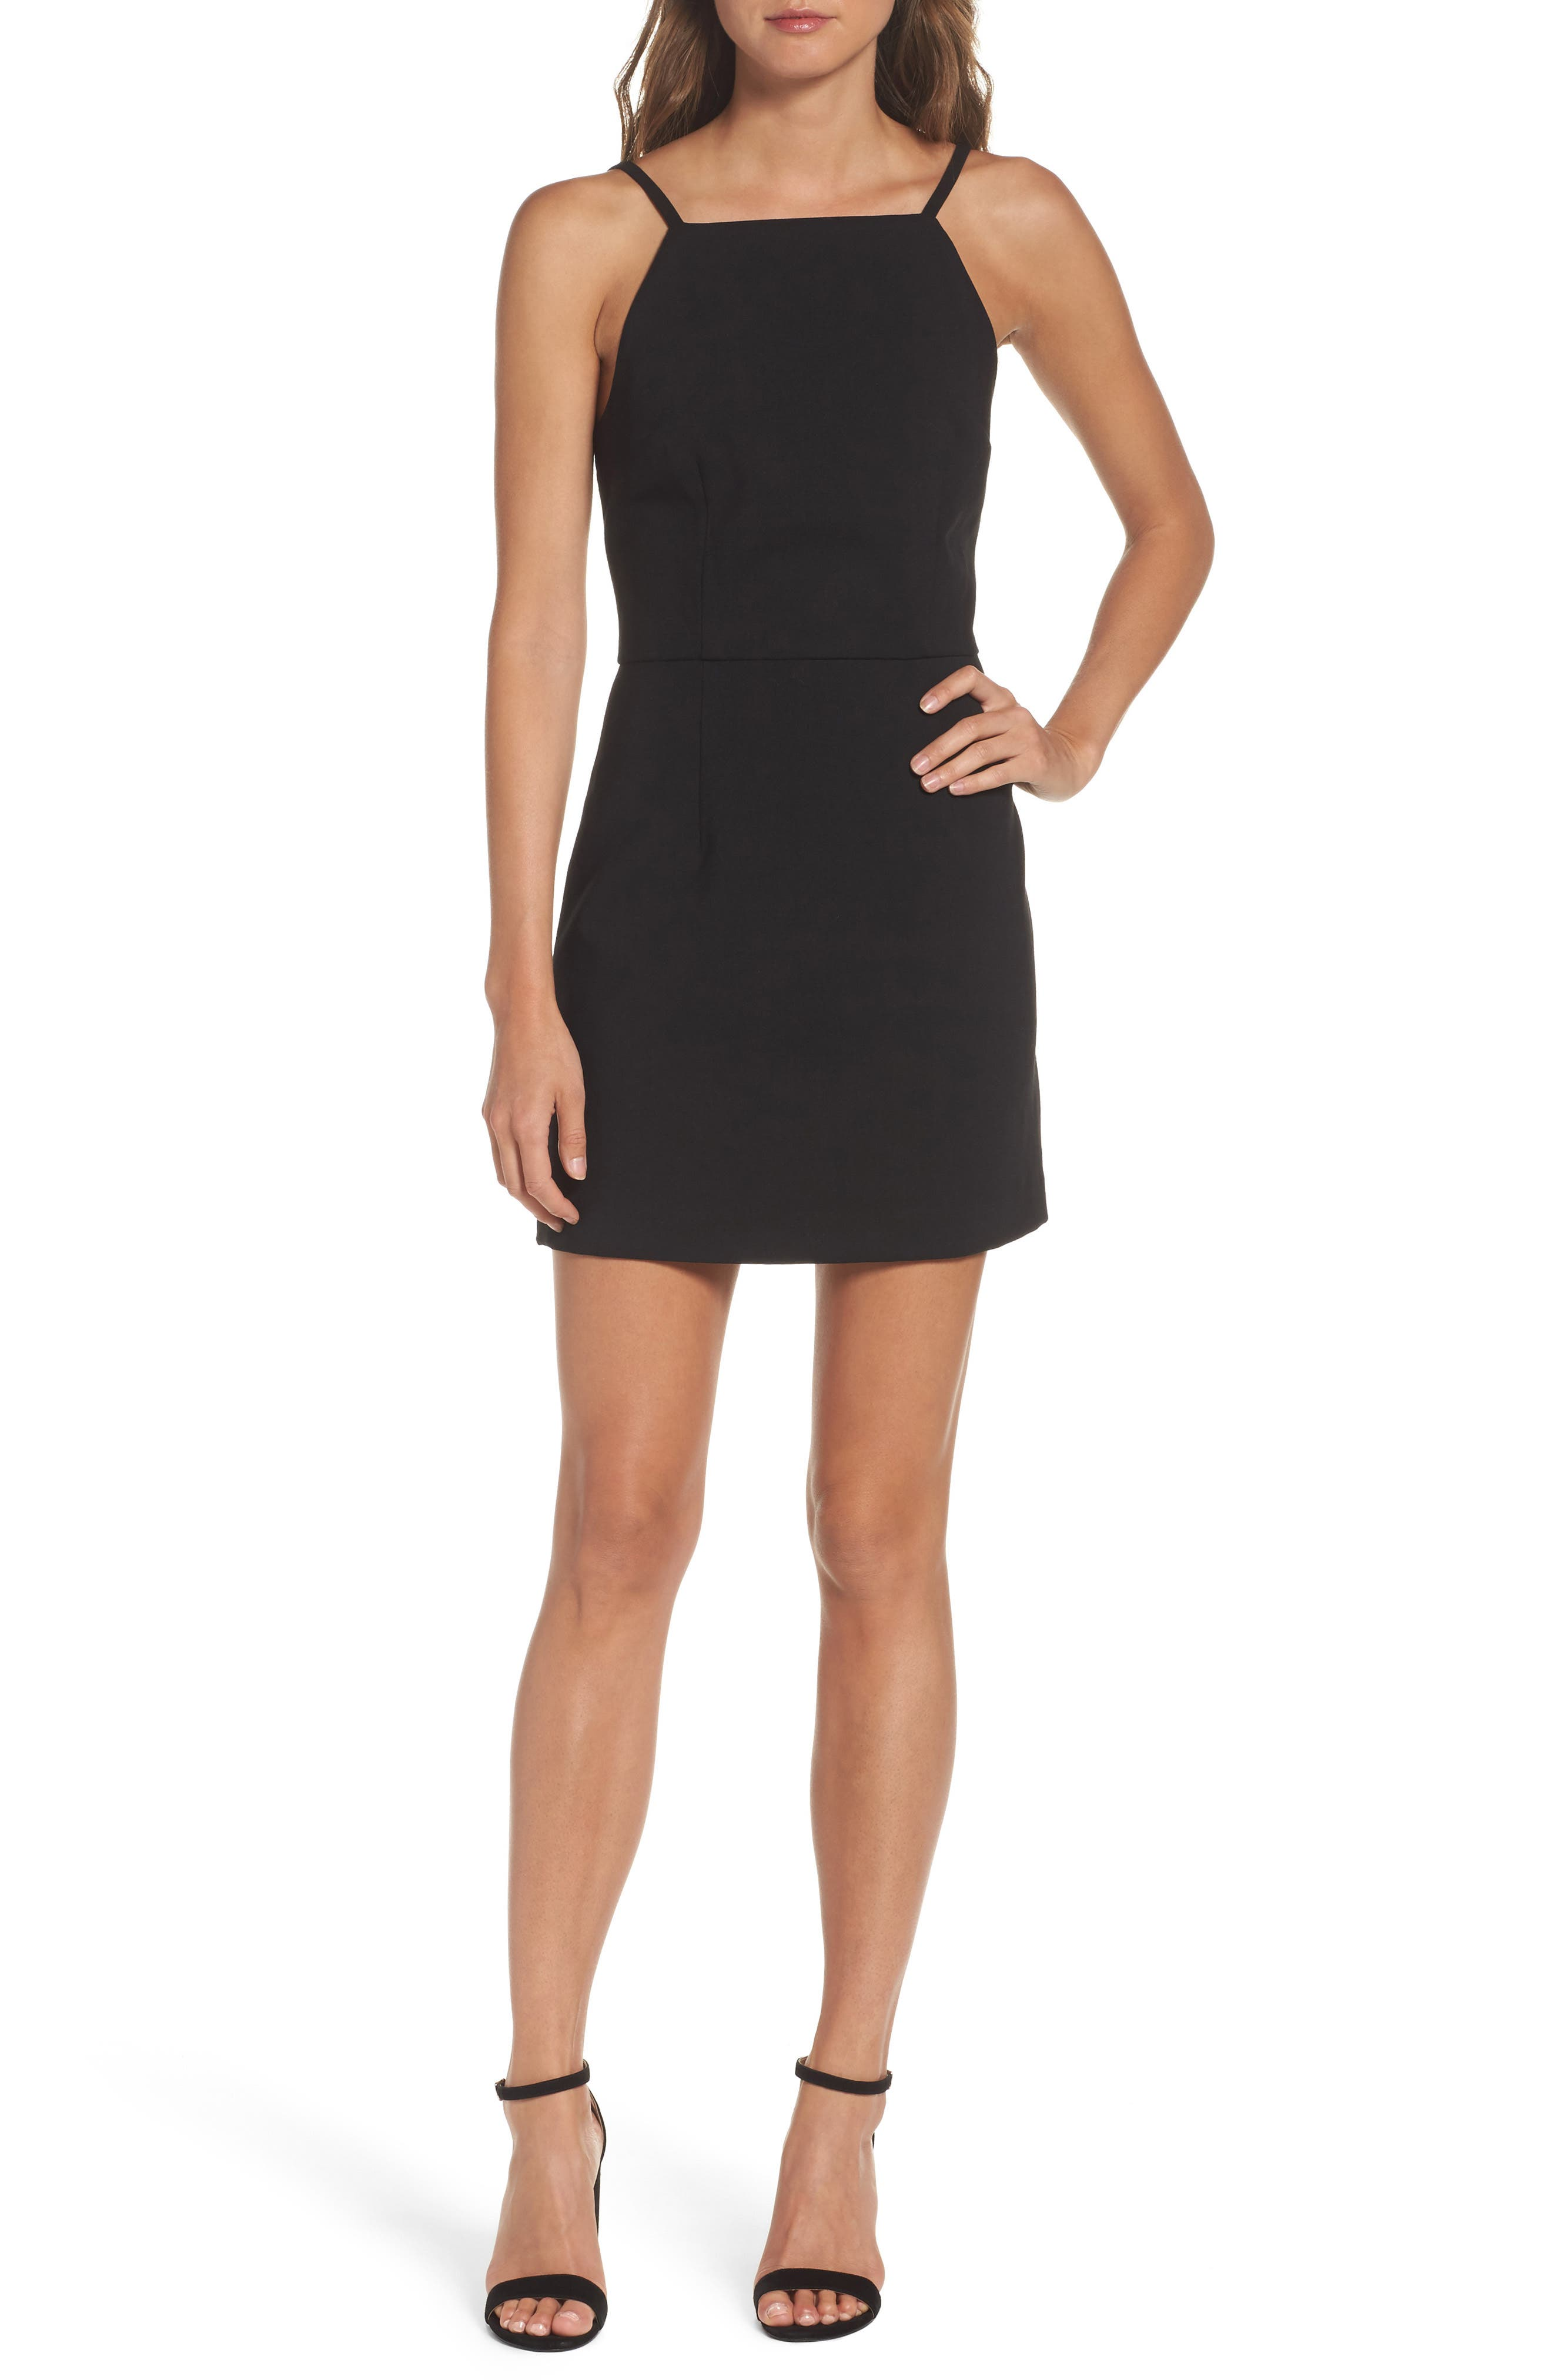 Black dress in french 0 to 60